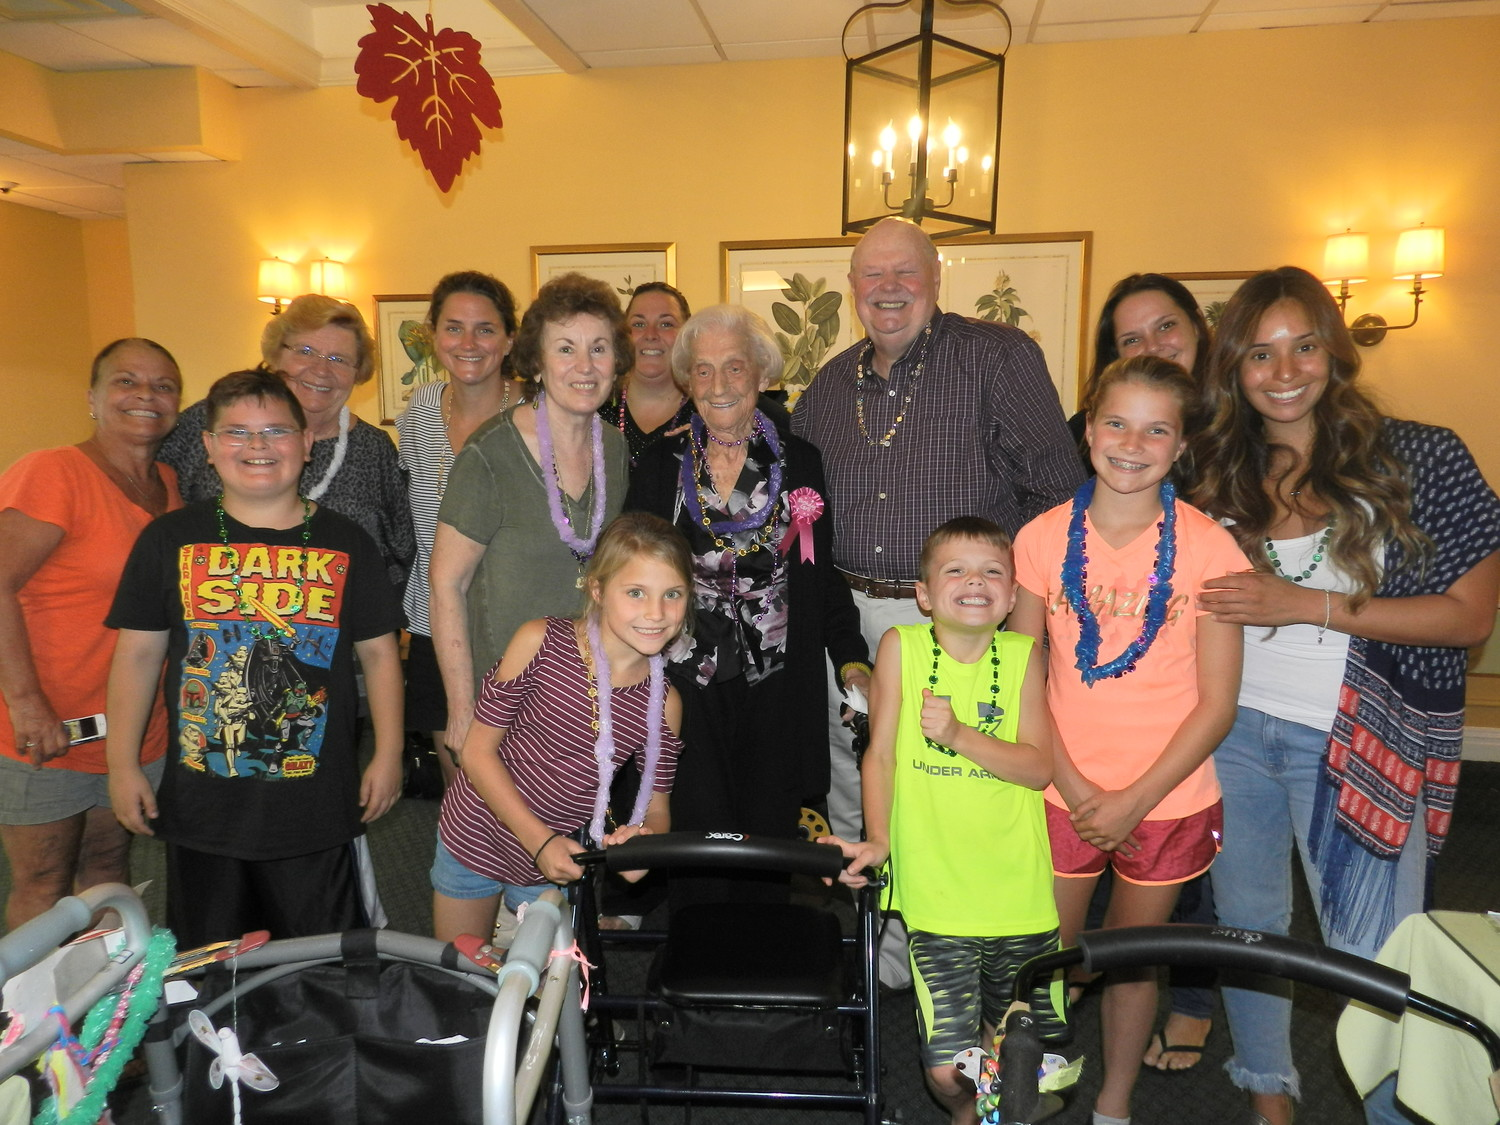 Alyssa Seidman/Herald